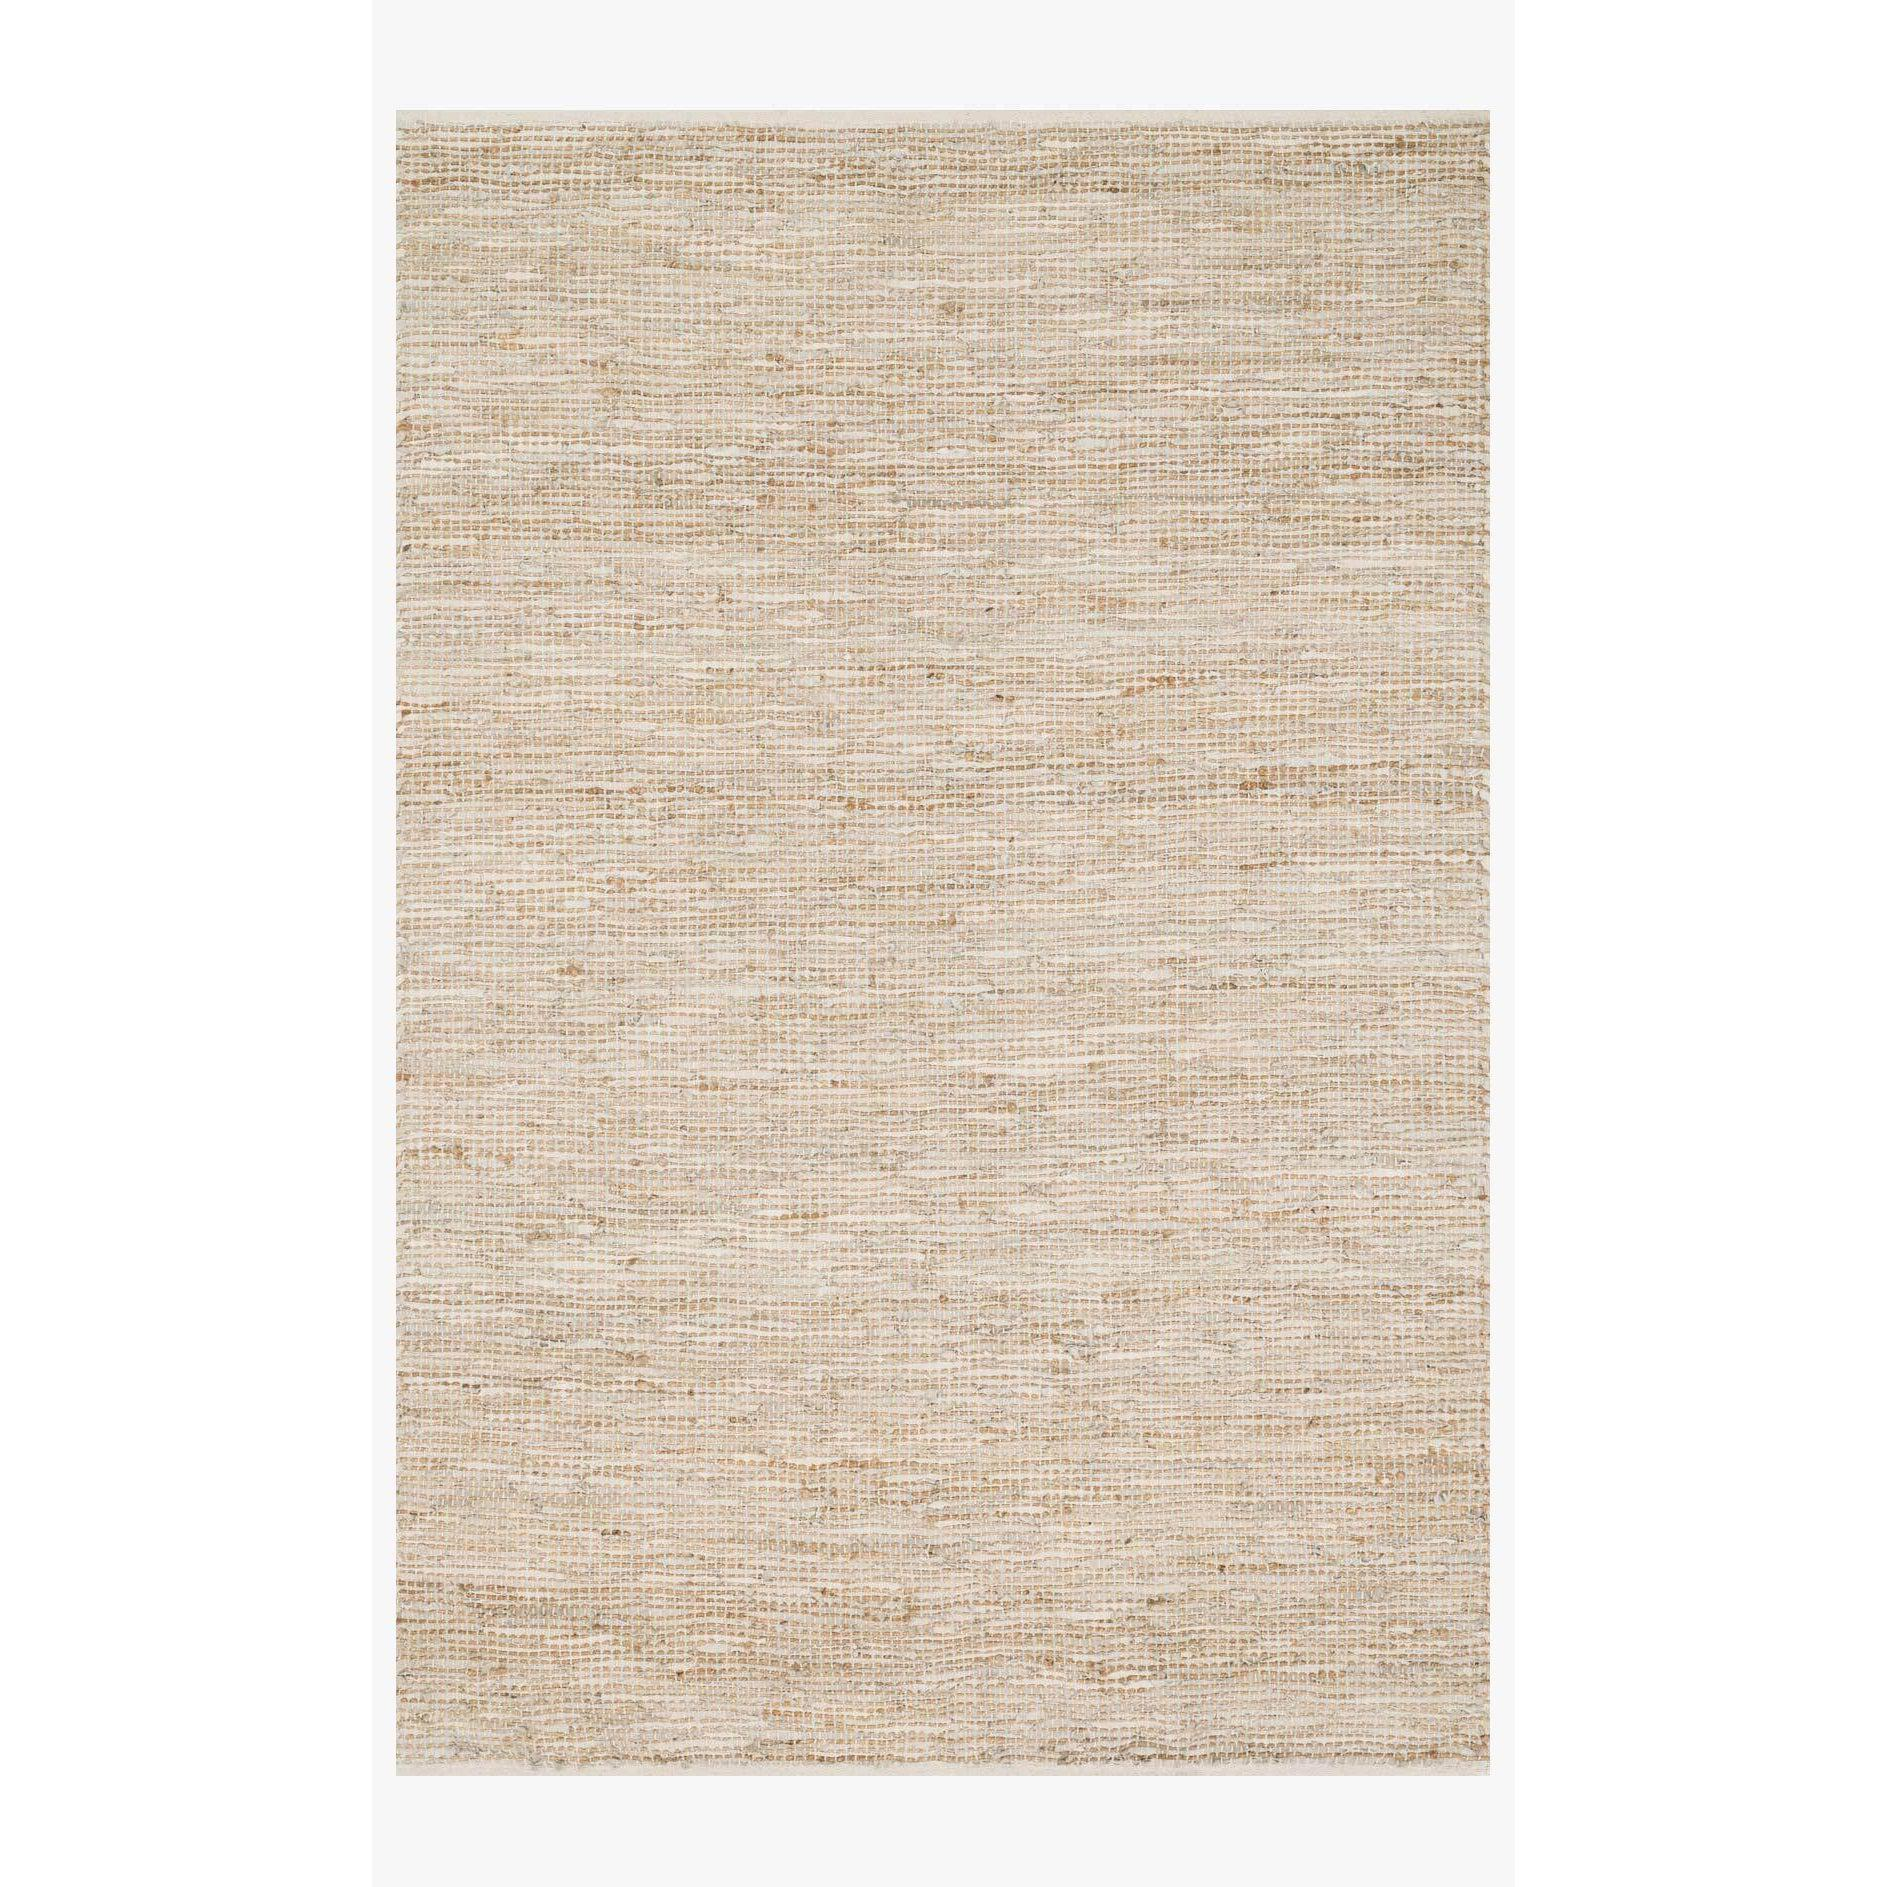 Edge Rug by Loloi Rugs - ED-01 - Ivory-Loloi Rugs-Blue Hand Home